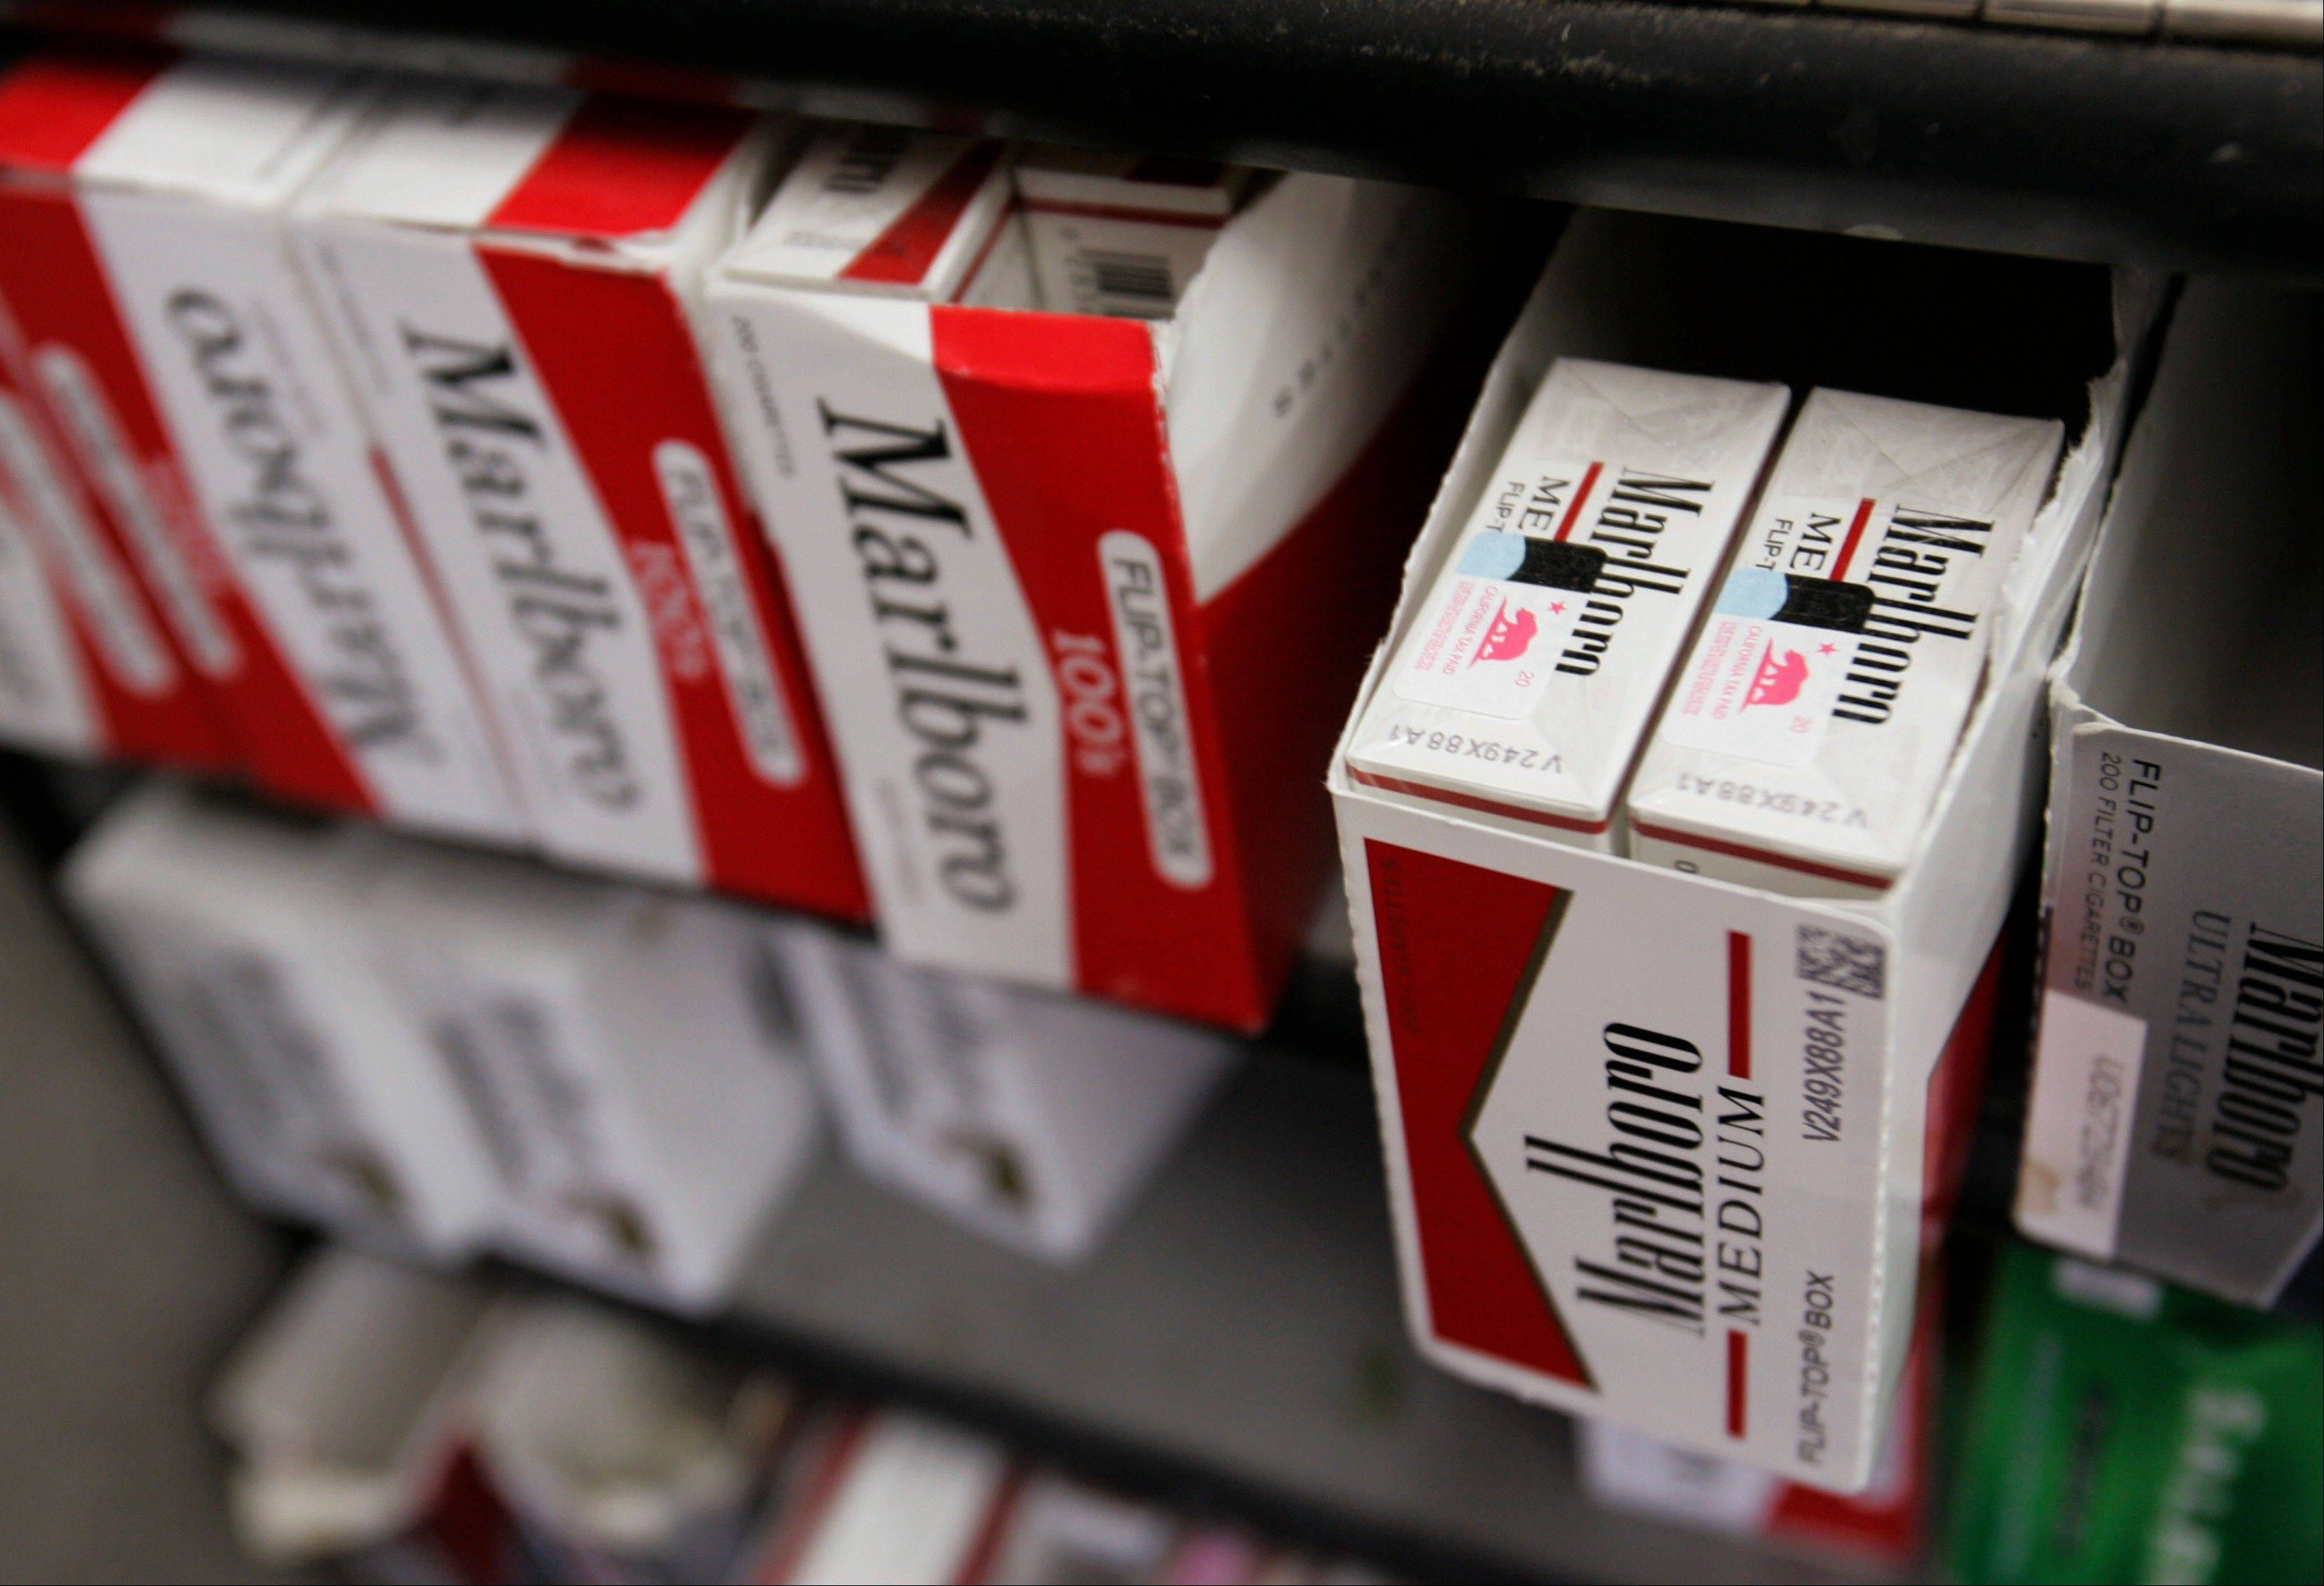 Cigarette maker Philip Morris International Inc. said Thursday that its first-quarter profit fell nearly 2 percent on a decline in the number of cigarettes sold.